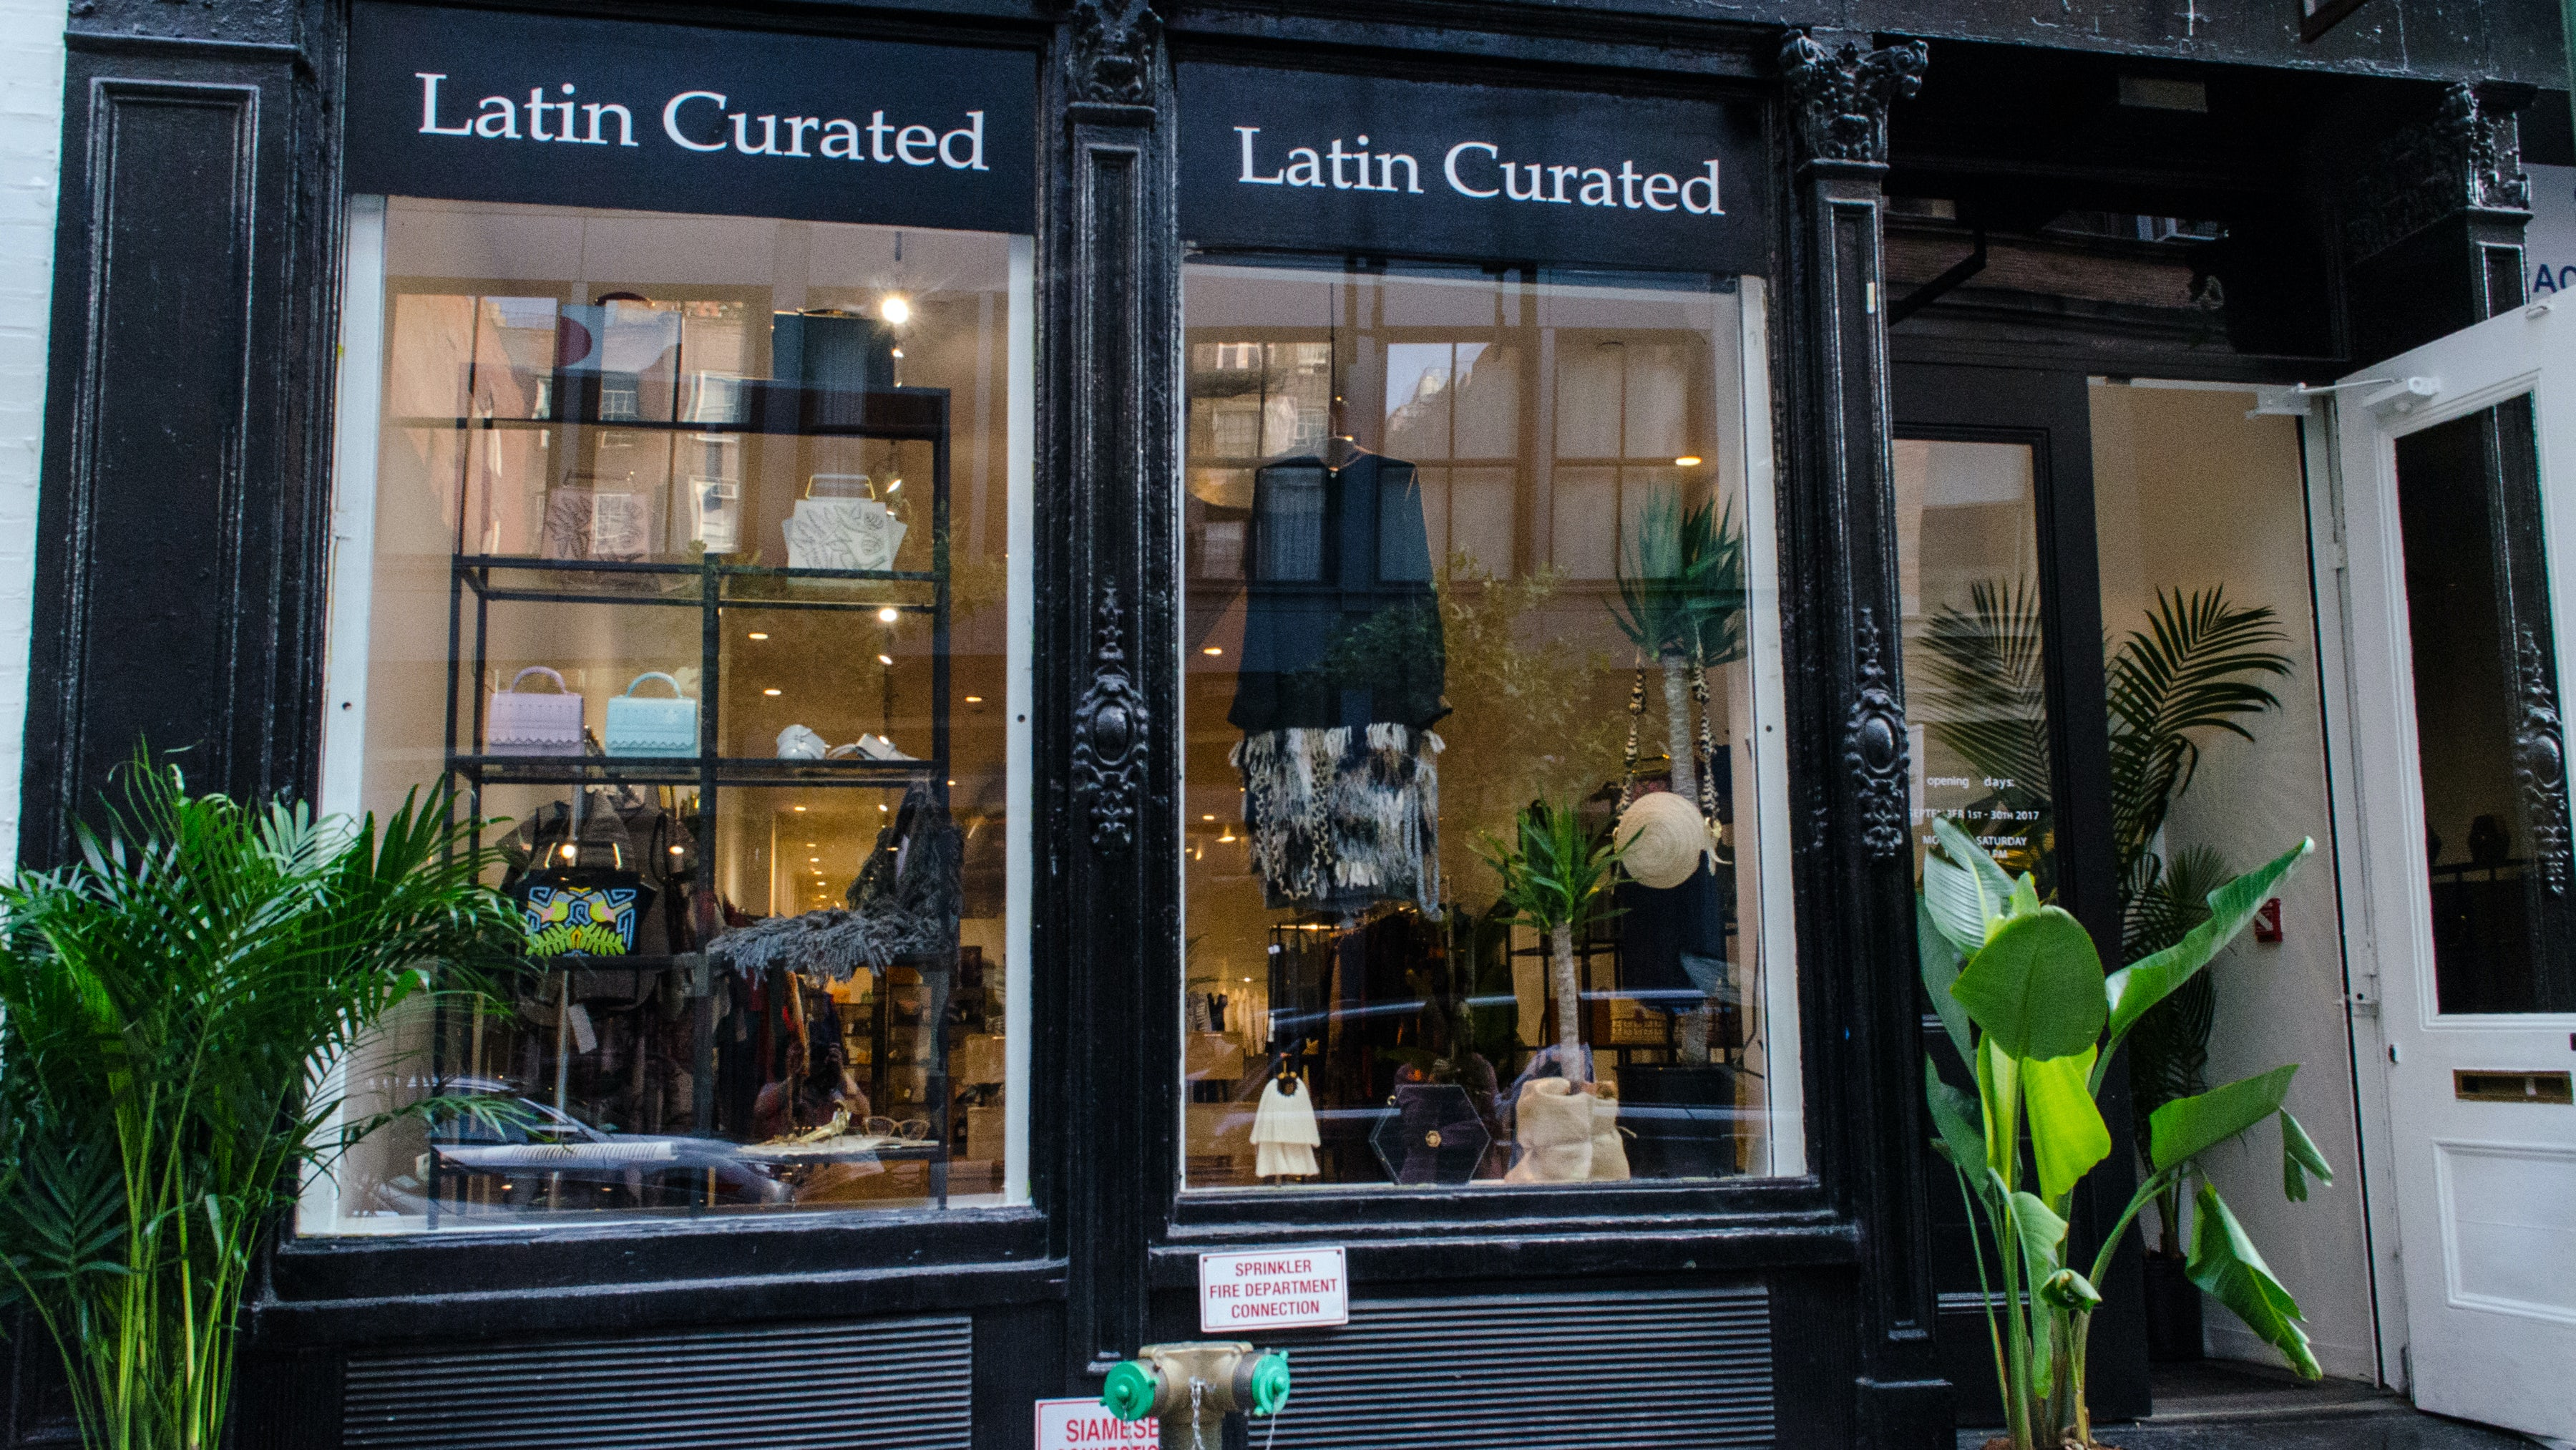 The Latin Curated store front | Source: Courtesy